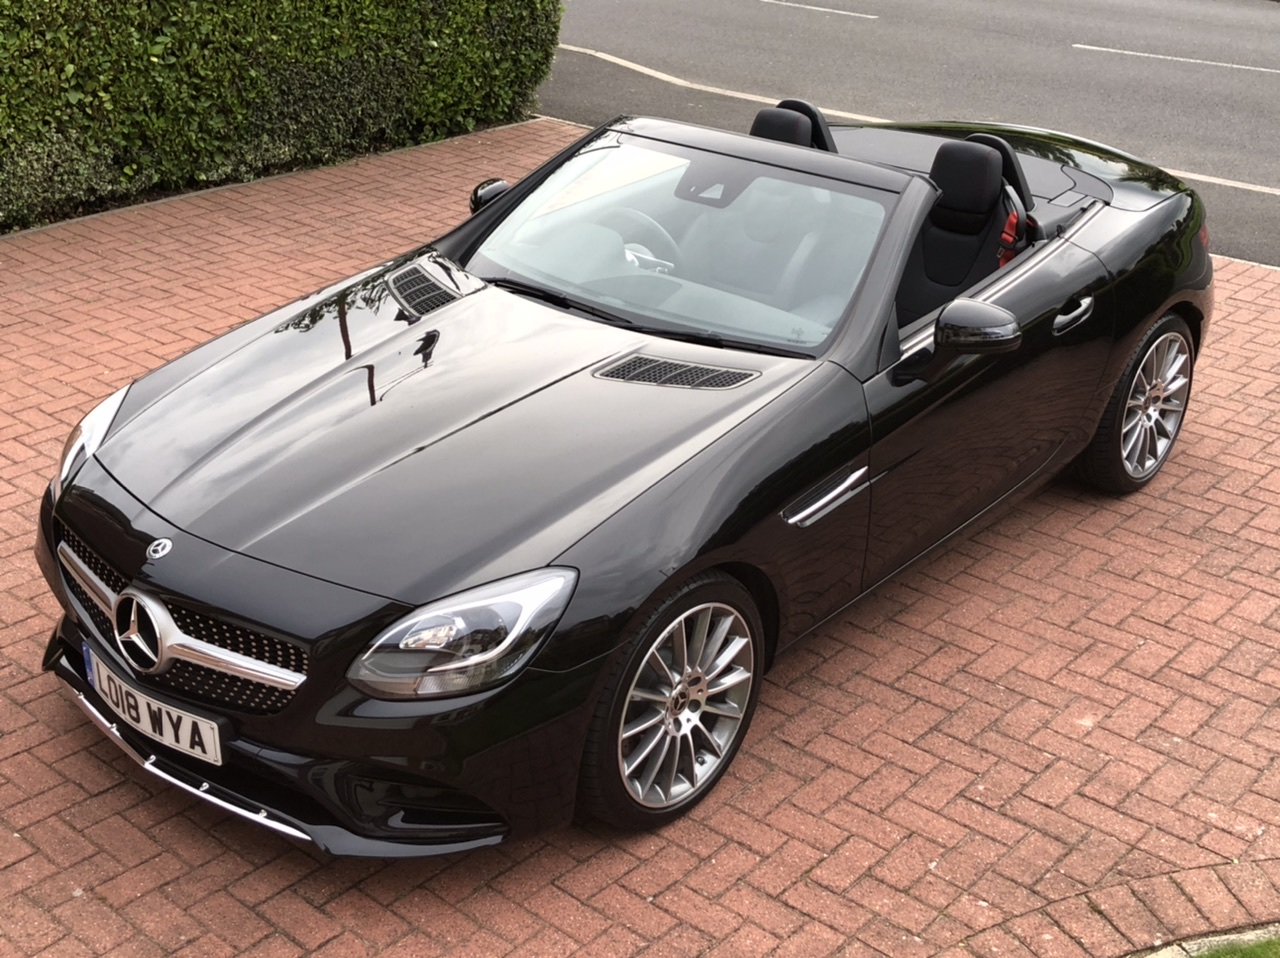 2018 18 MERCEDES BENZ SLC 250 CDI (190BHP) AMG LINE CONVERTIBLE 9G-TRONIC AUTO DELIVERY MILEAGE £40K NEW